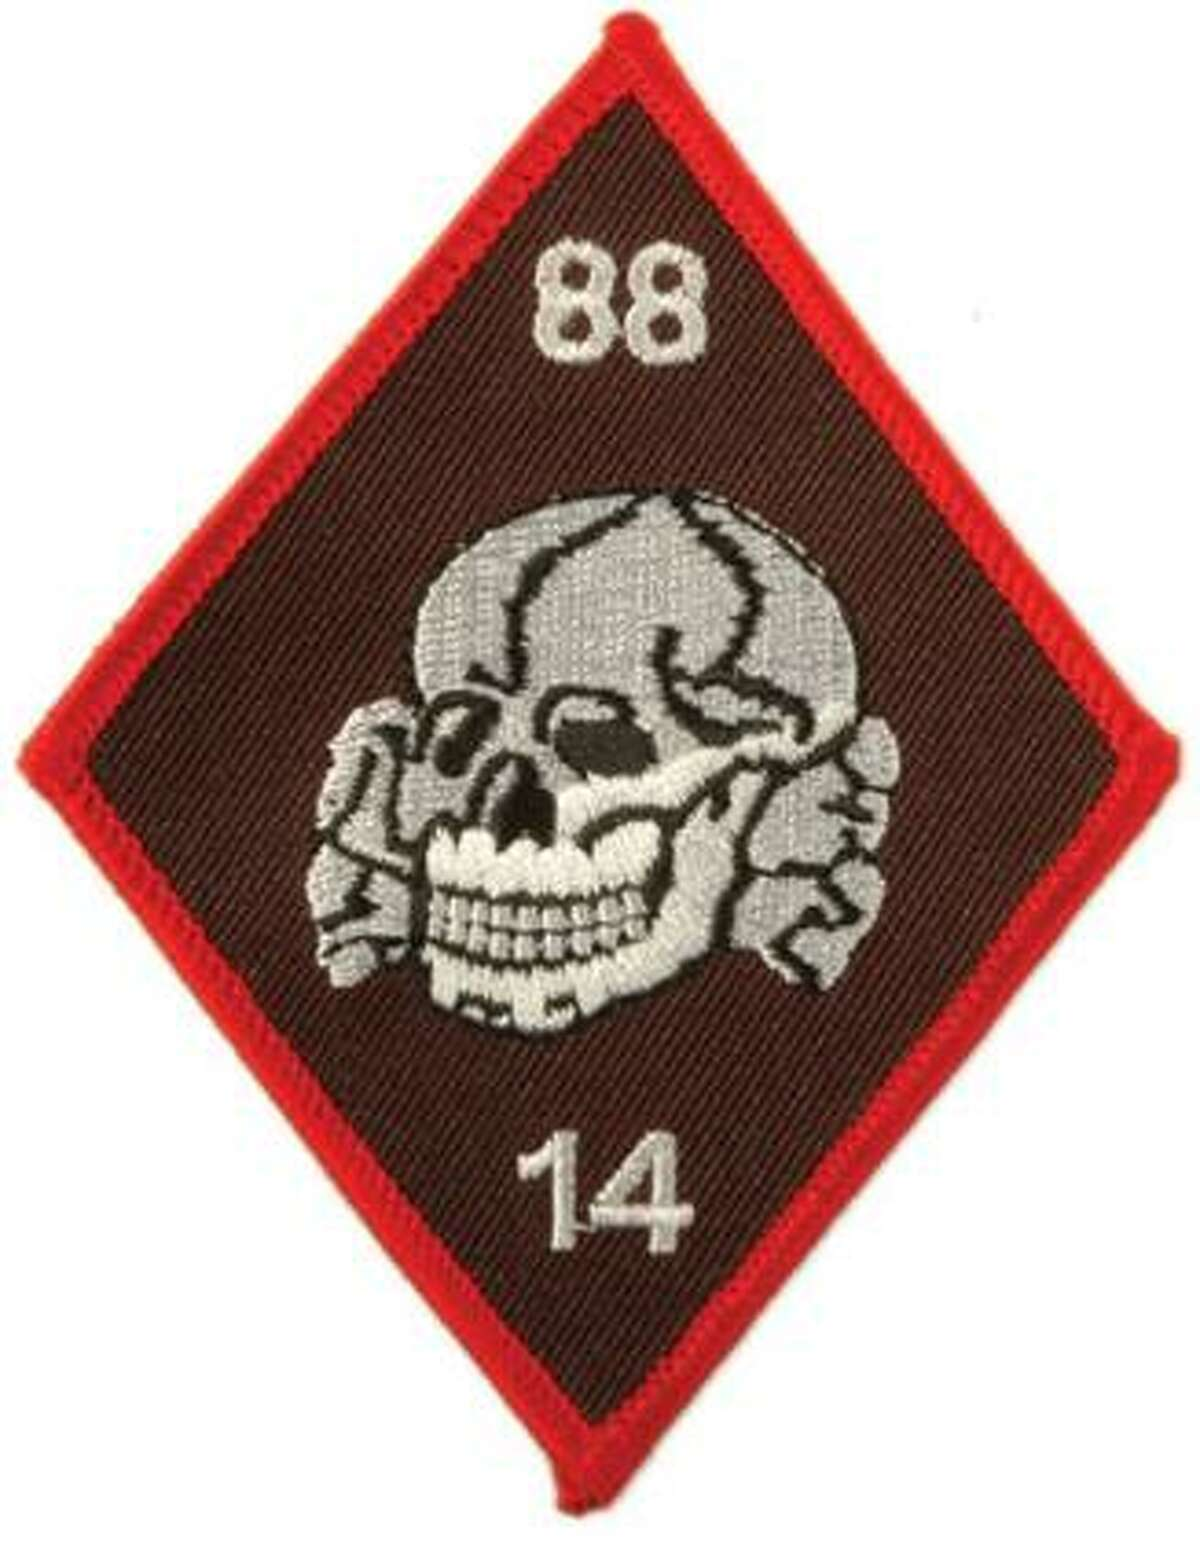 """Totenkopf patch worn by many racist skinheads. """"14"""" stands for the """"14 words"""" slogan coined by David Lane. """"88"""" stands for """"Heil Hitler,"""" as H is the eighth letter of the alphabet. (Photo courtesy of the Southern Poverty Law Center)"""